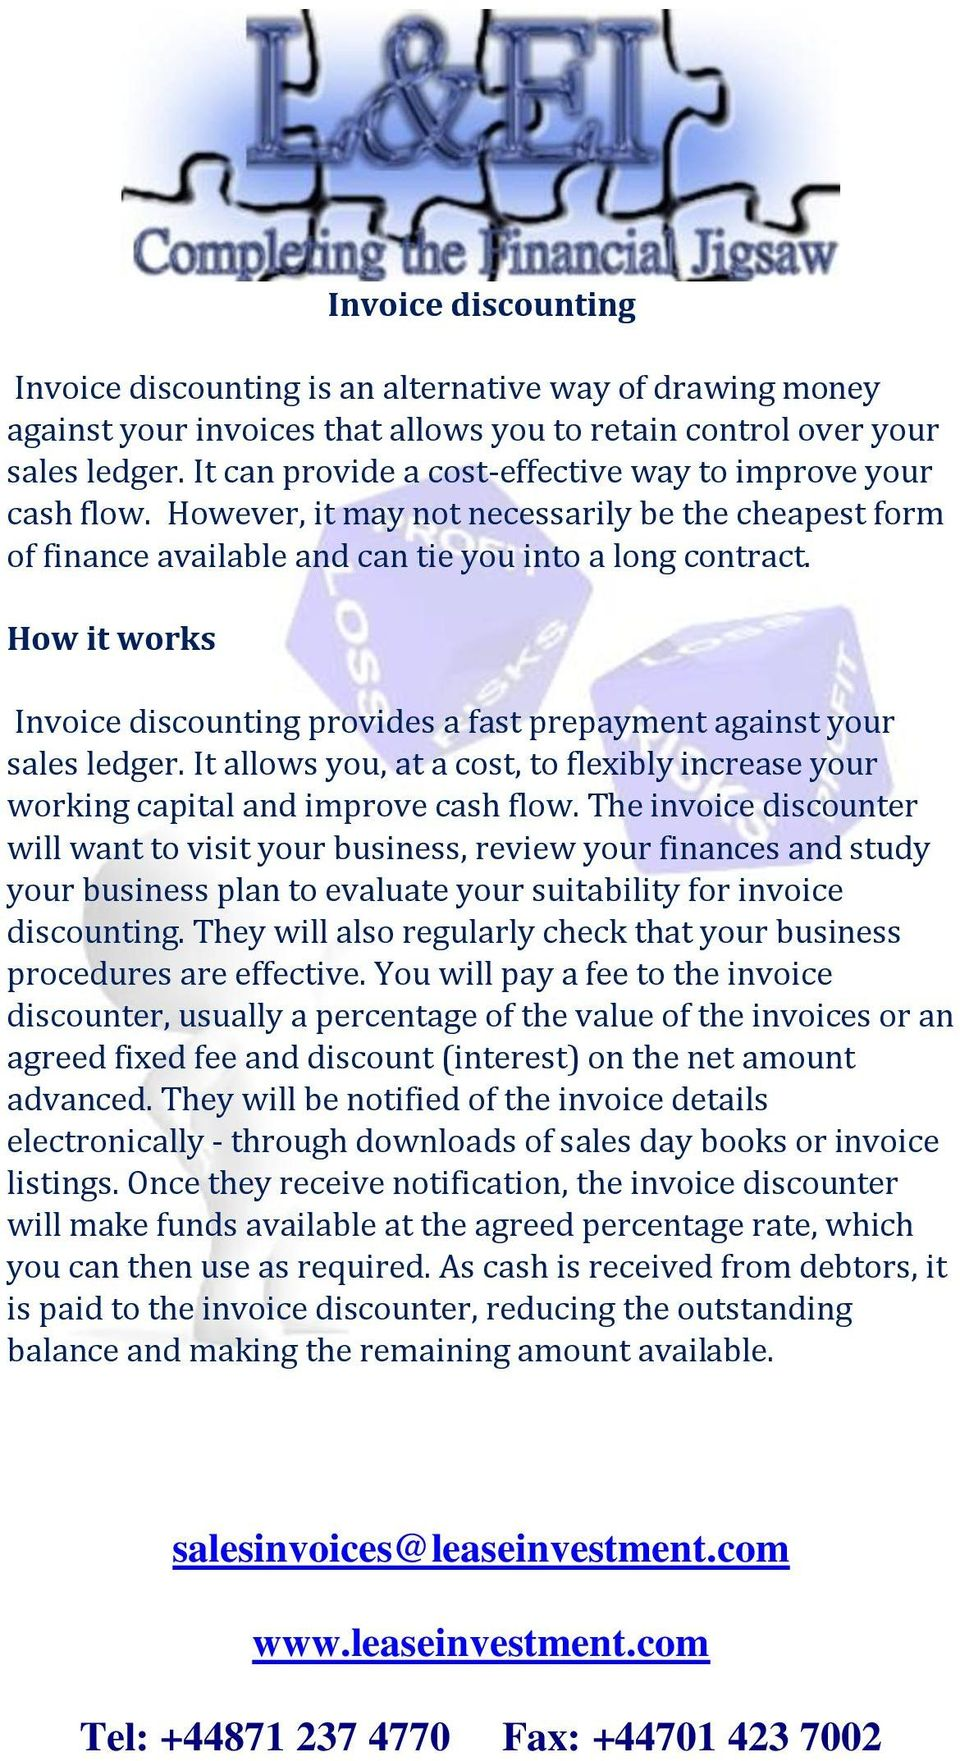 How it works Invoice discounting provides a fast prepayment against your sales ledger. It allows you, at a cost, to flexibly increase your working capital and improve cash flow.